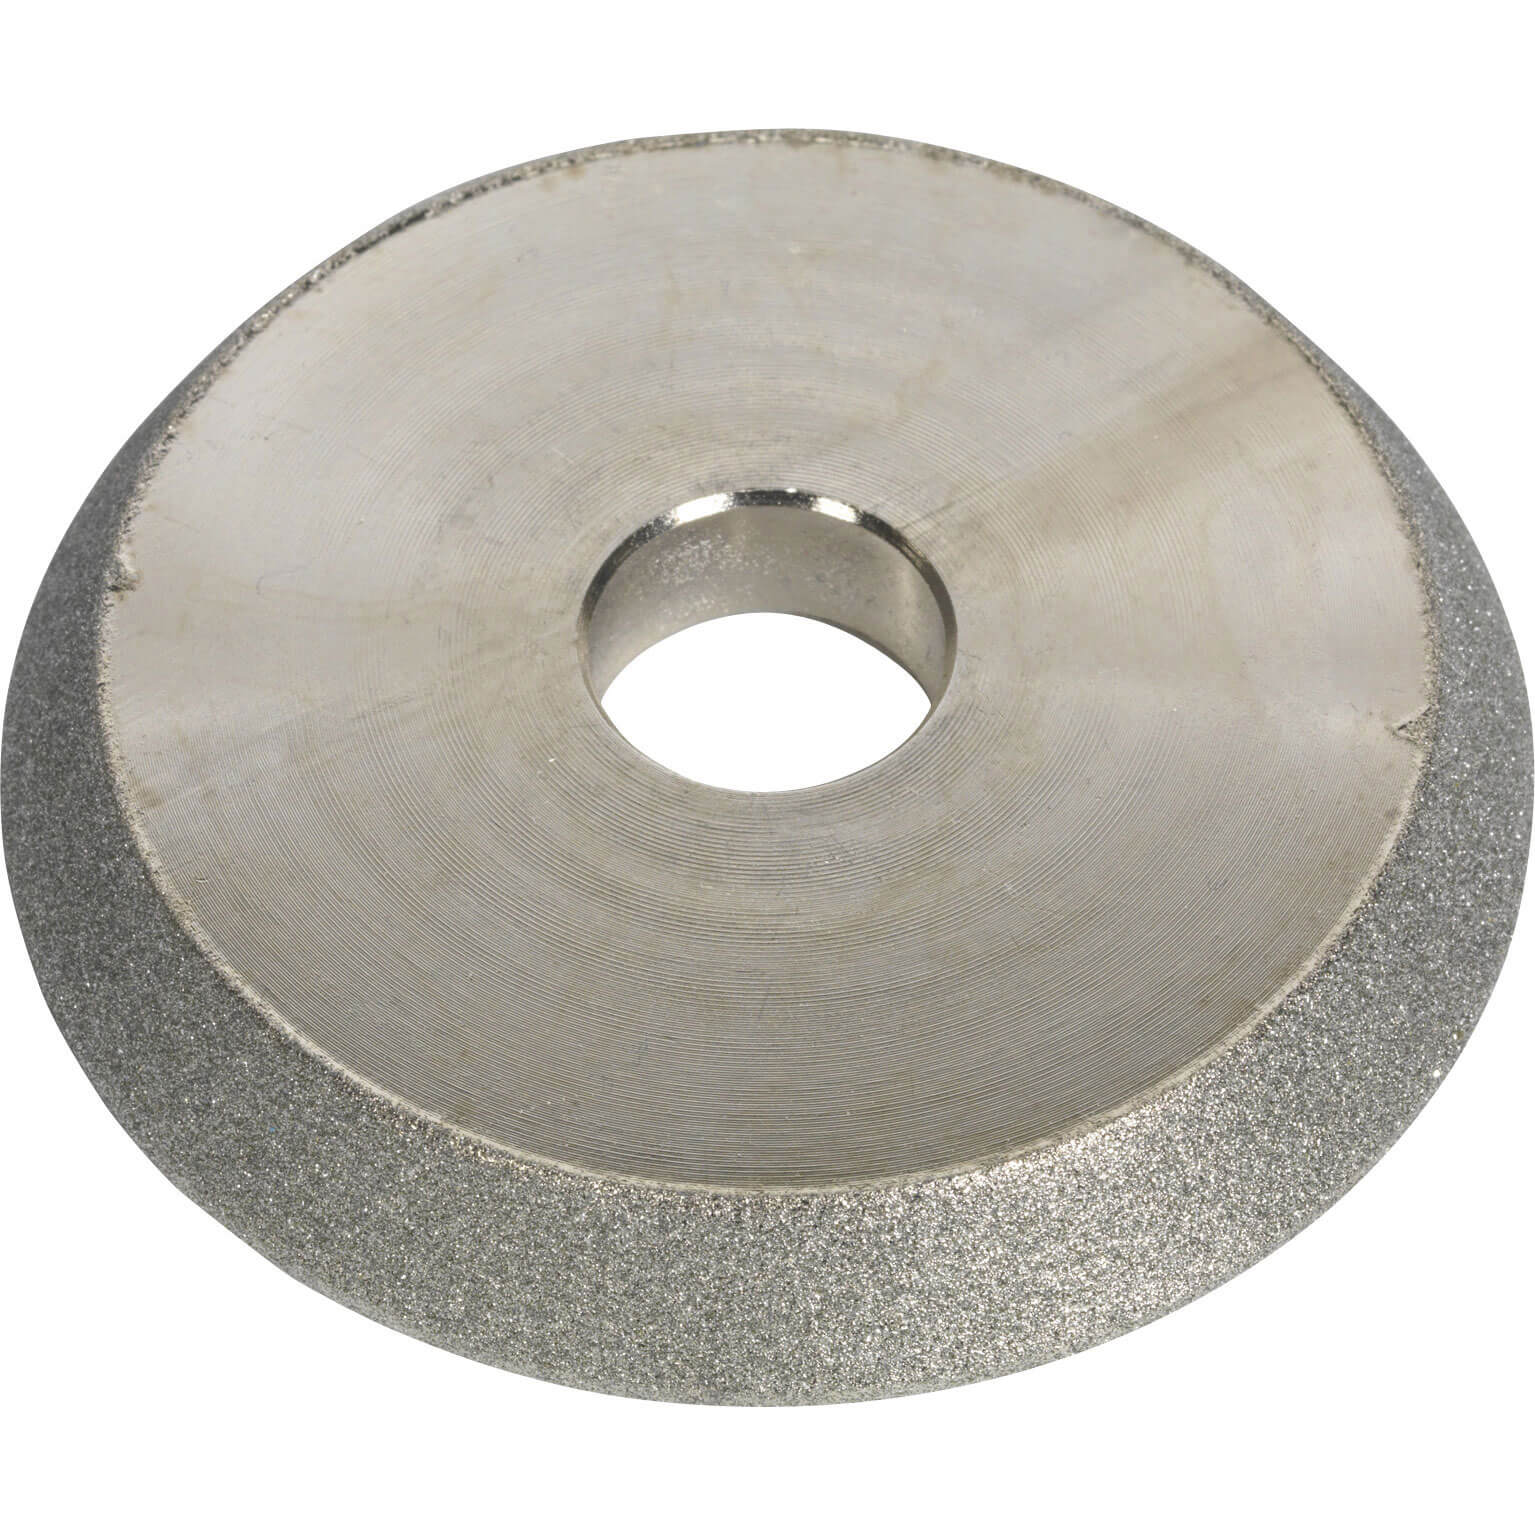 Image of Sealey Grinding Wheel For SMS2008 Drill Bit Sharpener